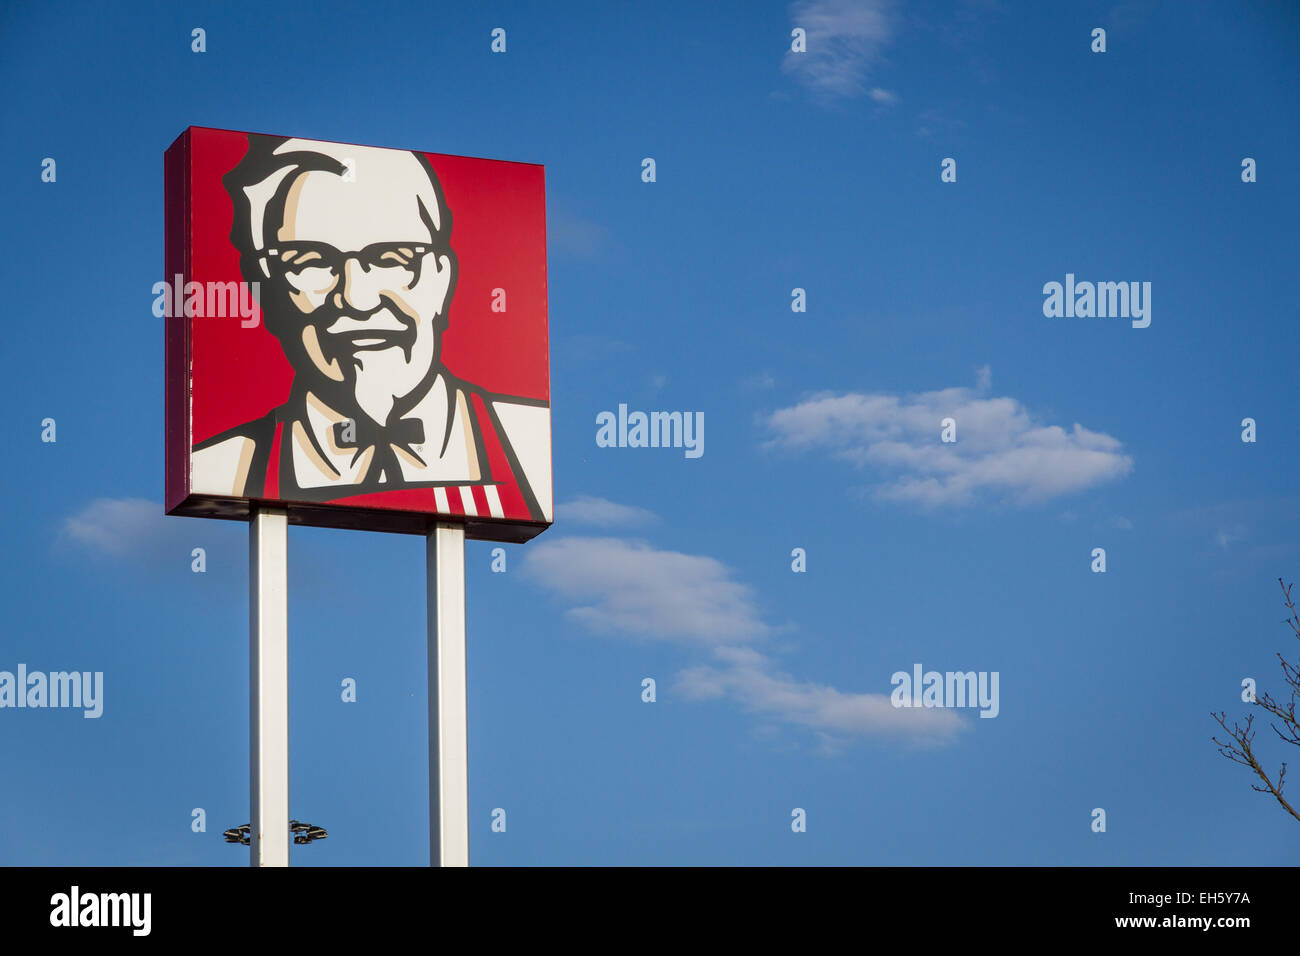 Colonel Sanders sign outside a KFC Kentucky Fried Chicken - Stock Image